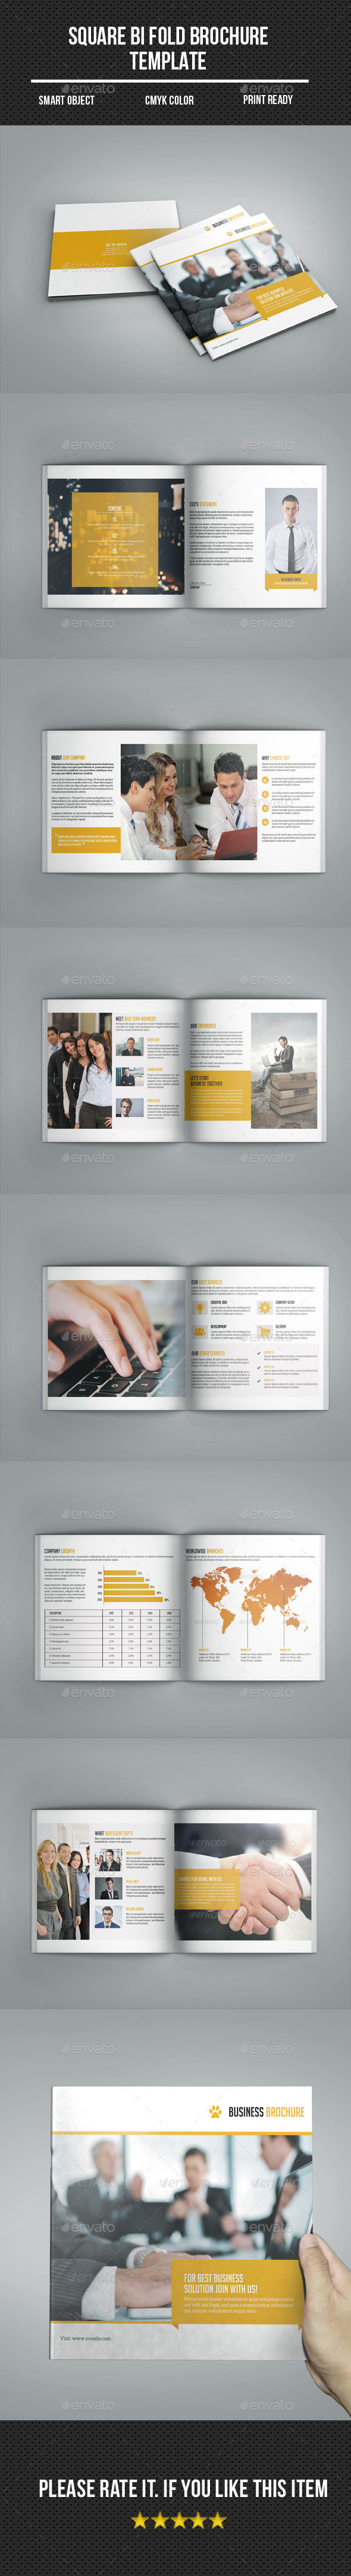 Square Bi- fold Business Brochure - Corporate Brochures